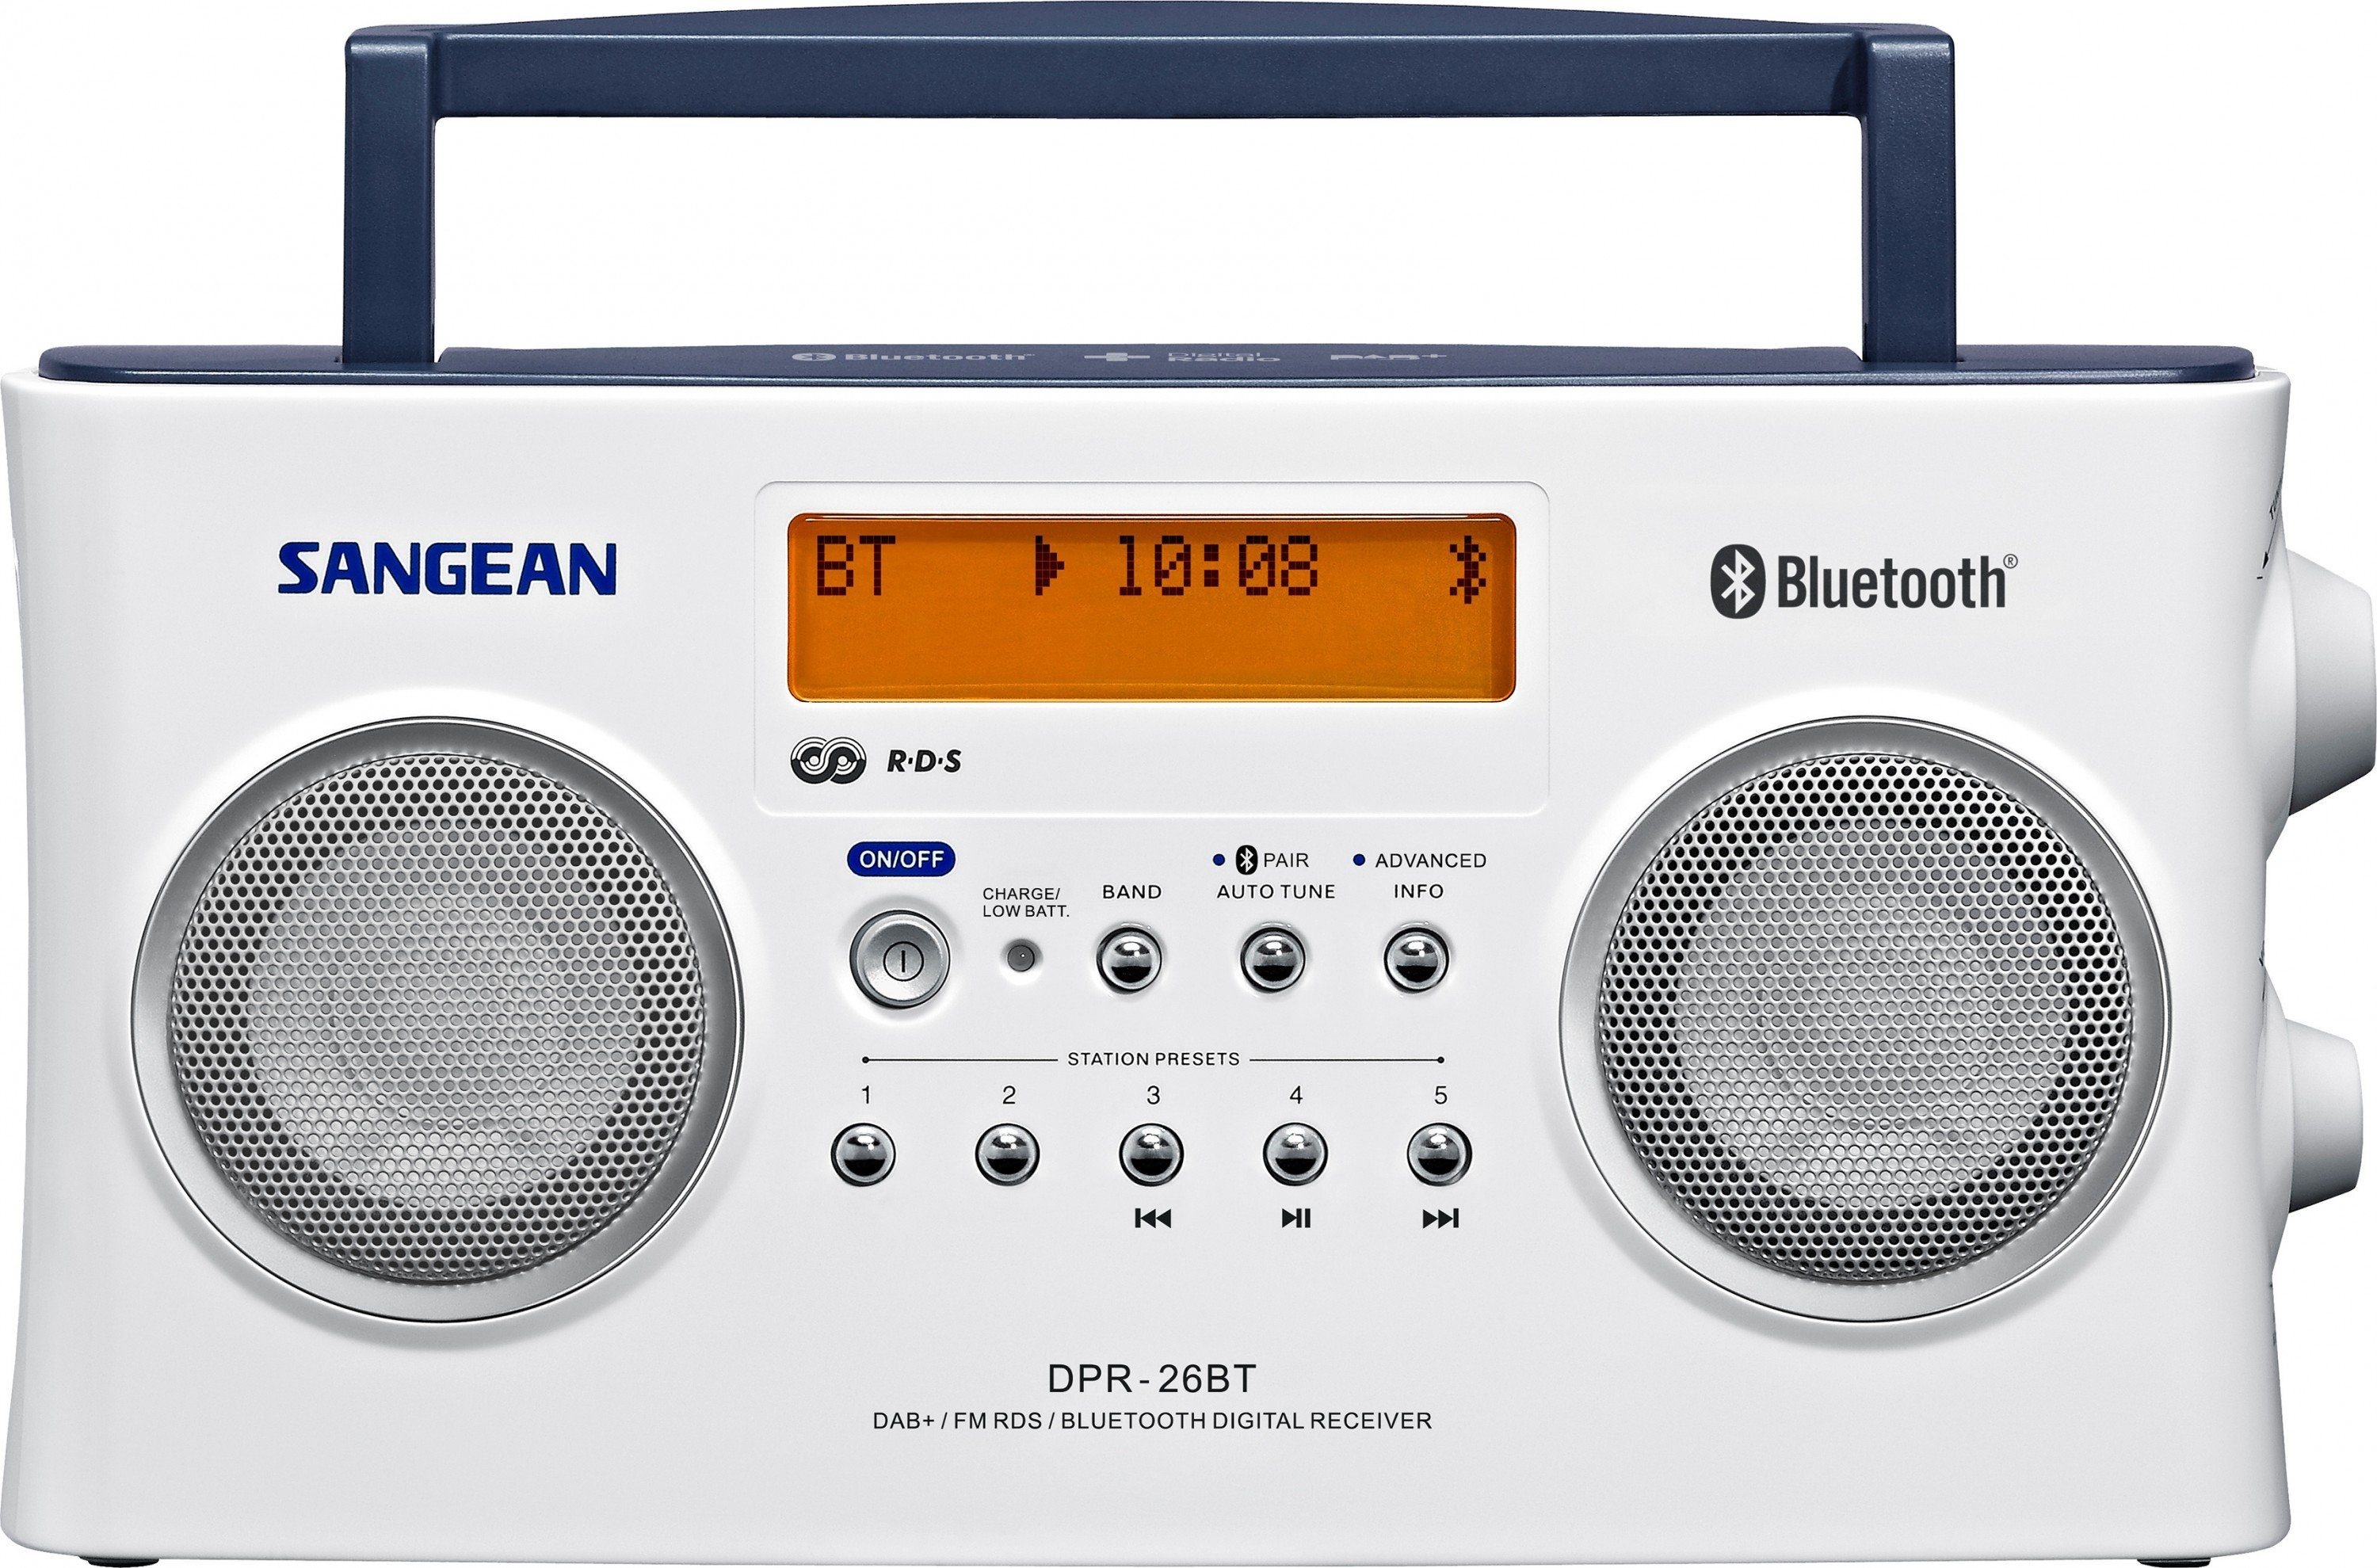 Sangean Stereo-Digitalradio (DAB+/UKW, Bluetooth, AUX-In) »DPR-26BT weiß«